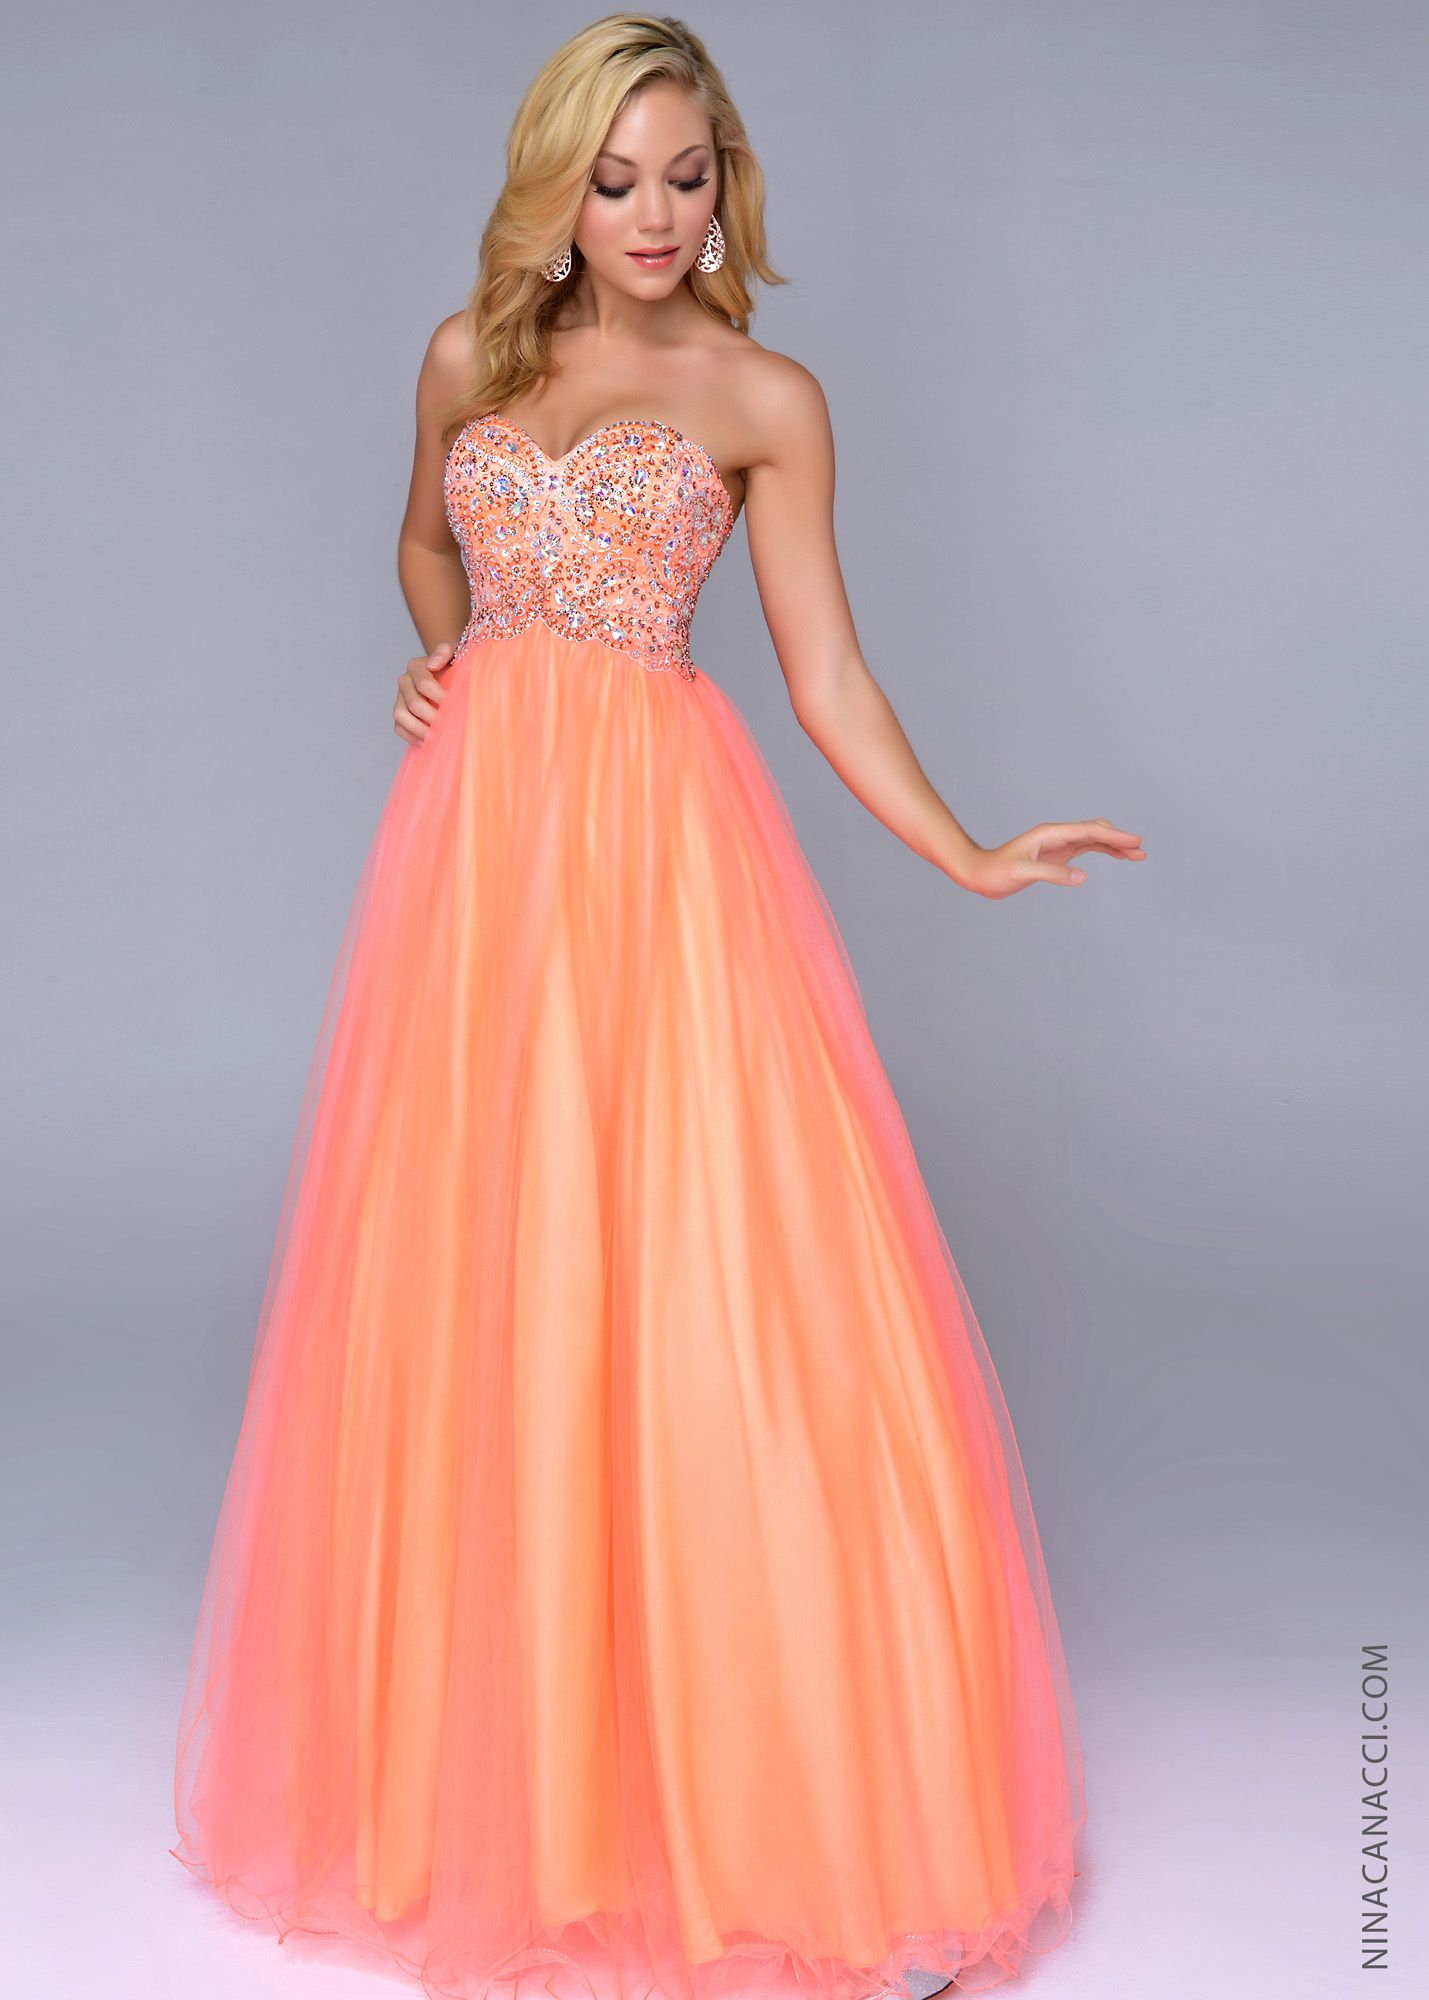 Neon Orange Ball Gown | Lace Up Corset Prom Dress | Mac Duggal ...